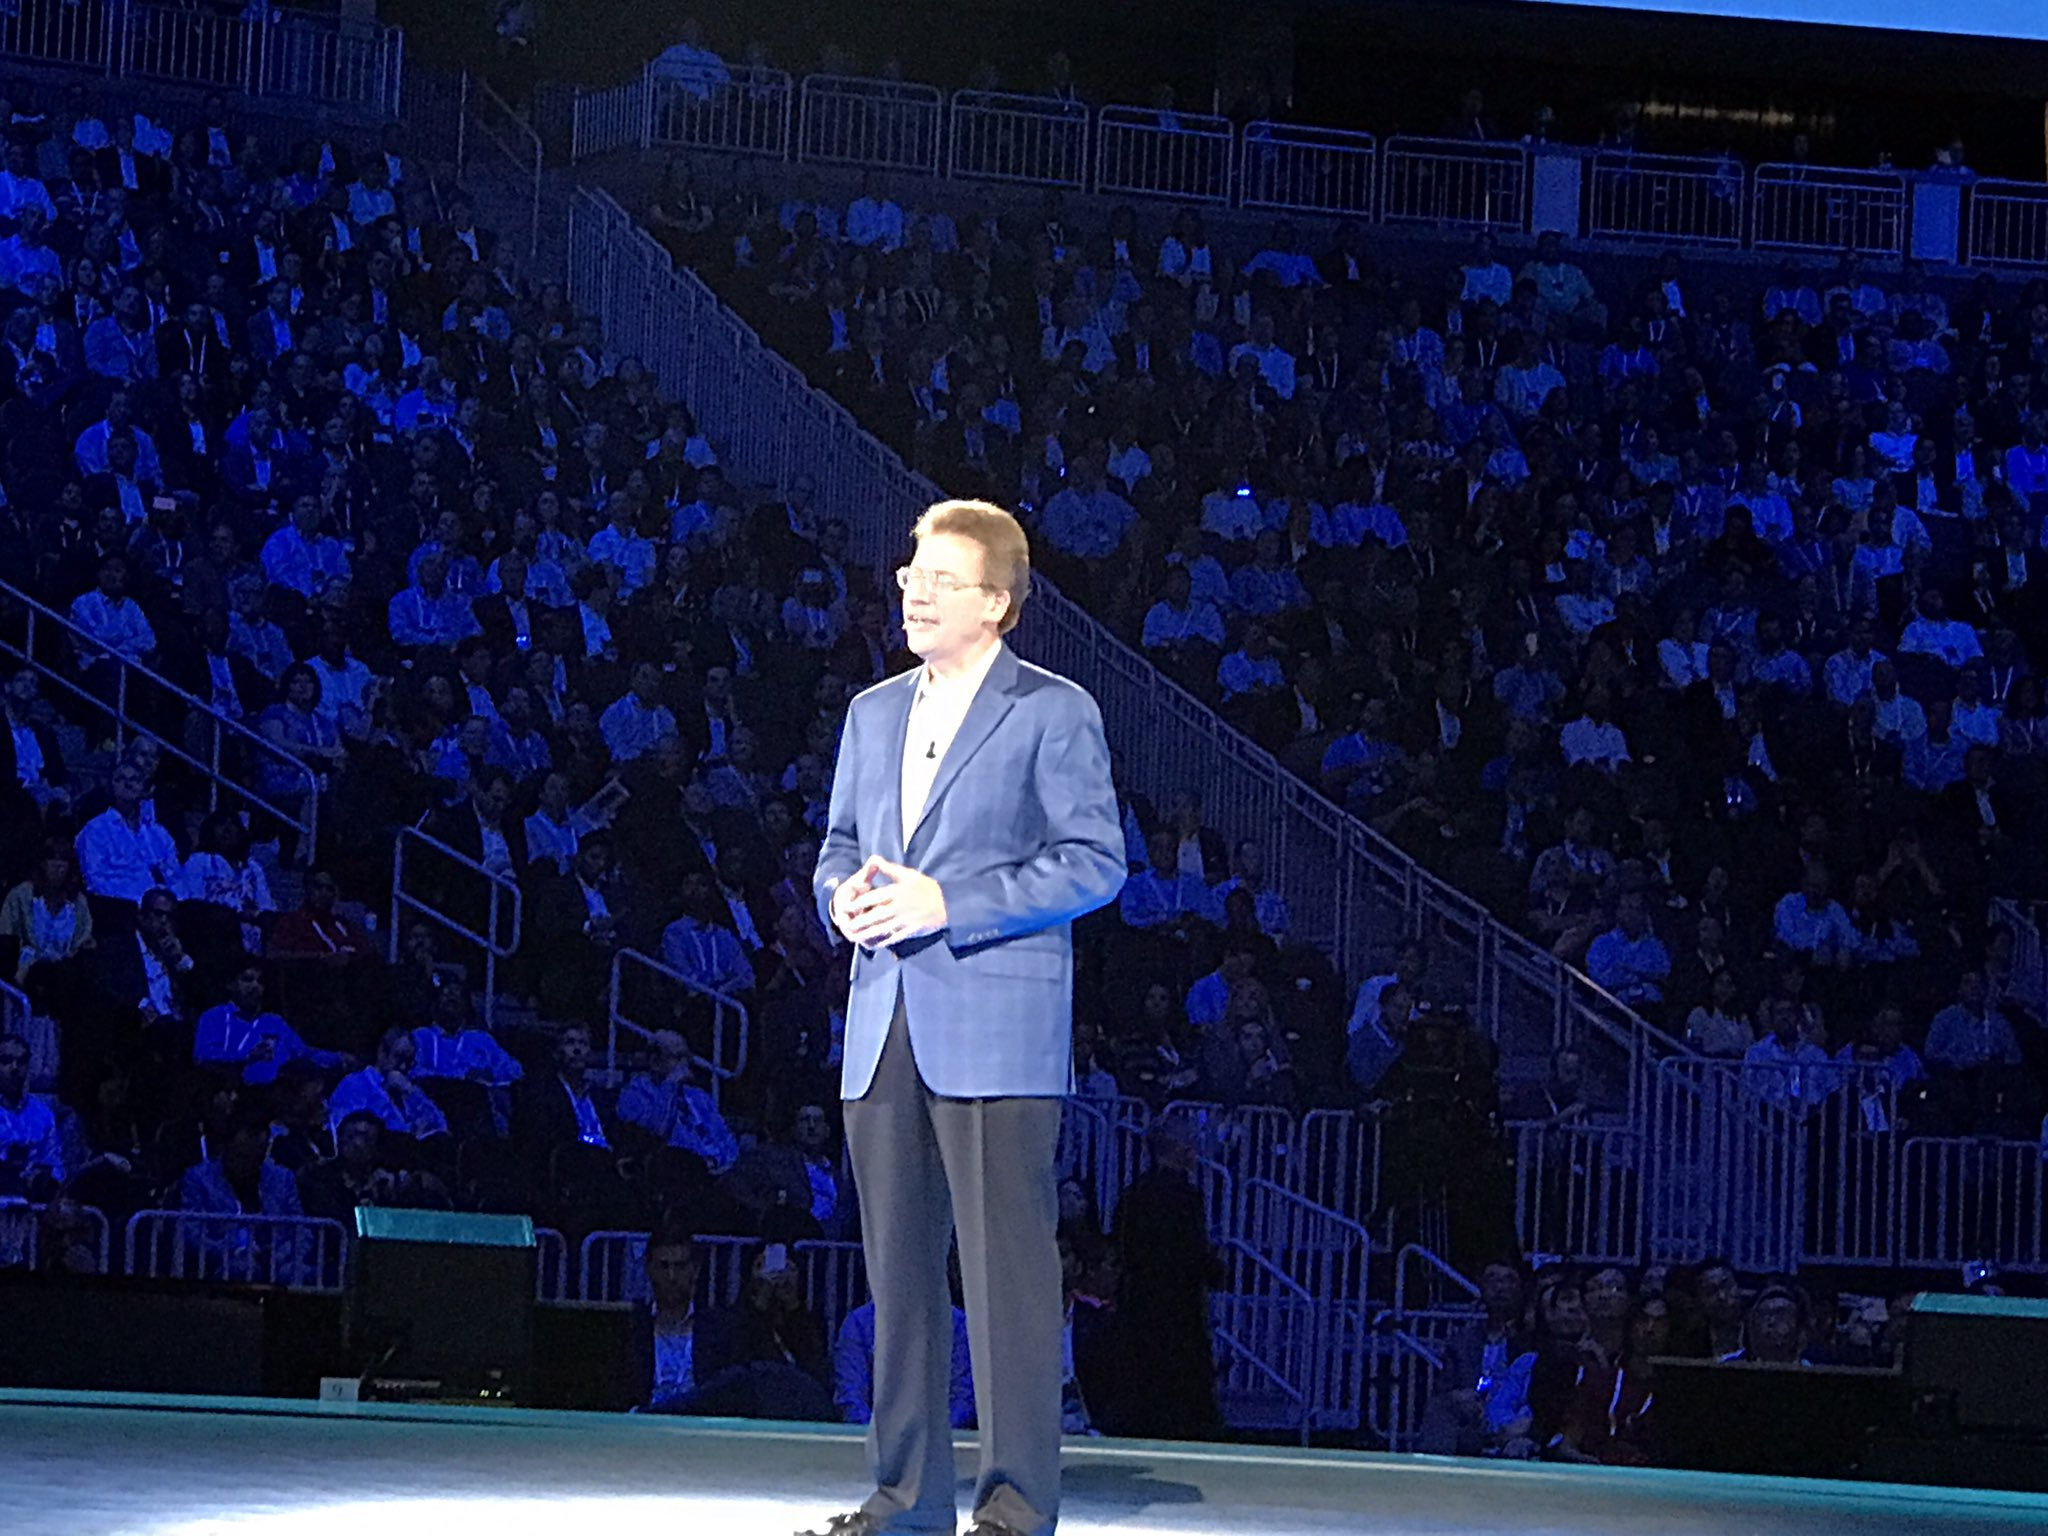 #IBM's John Kelly III believes most medical professionals will be using tools like #IBMWatson to provide care soon. I agree. #ibmwow #ai https://t.co/8QoVQbDlQZ